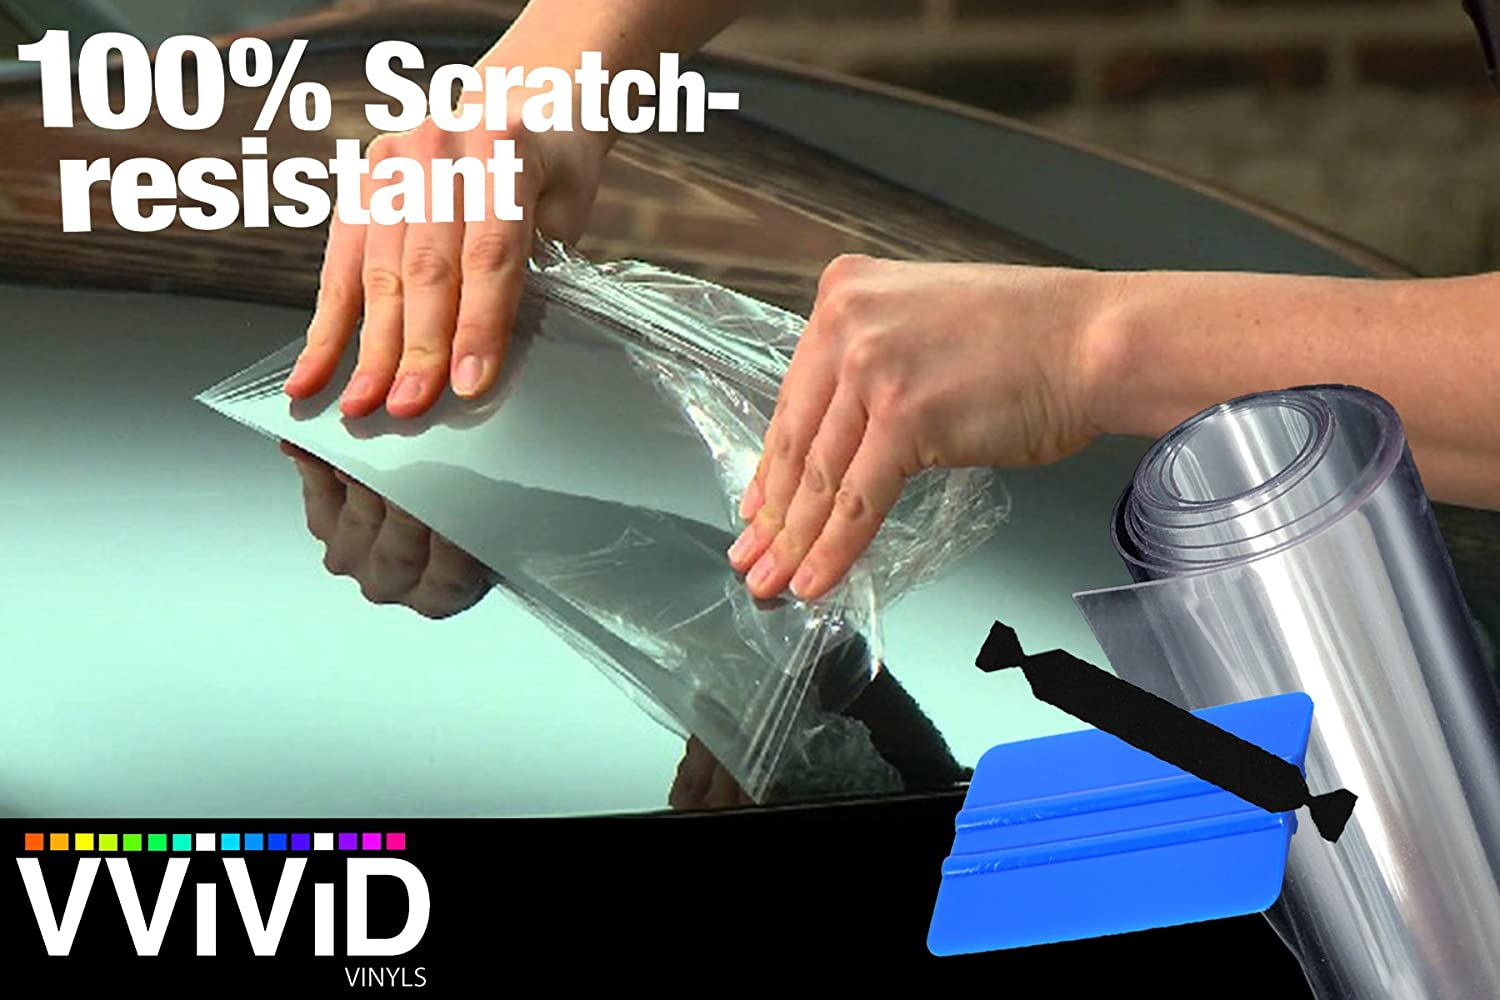 VViViD Clear Paint Protection Bulk Vinyl Wrap Film Including 3M Squeegee and Black Felt Applicator (17.9' x 54')